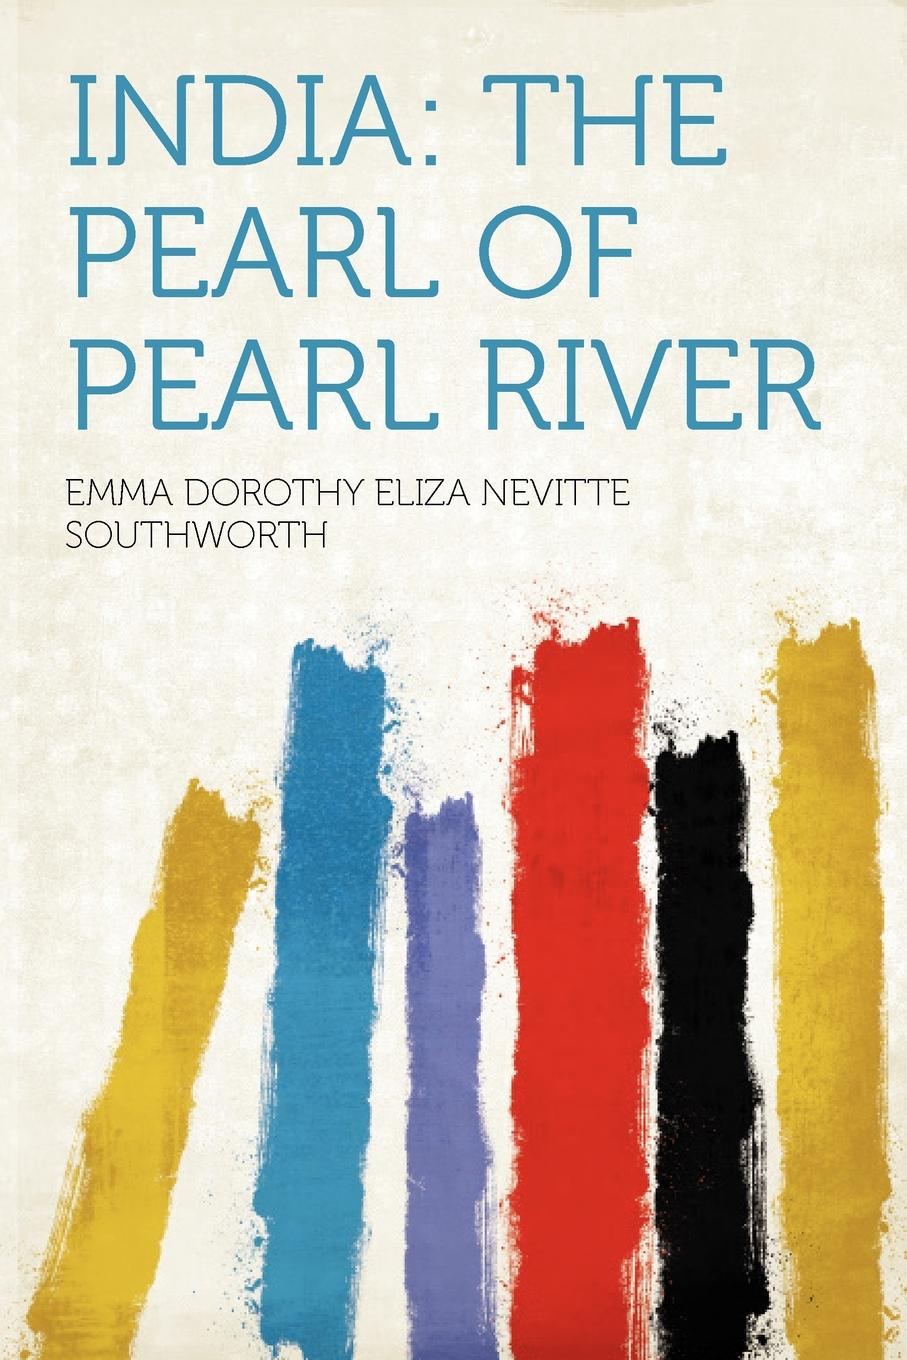 India. the Pearl of Pearl River